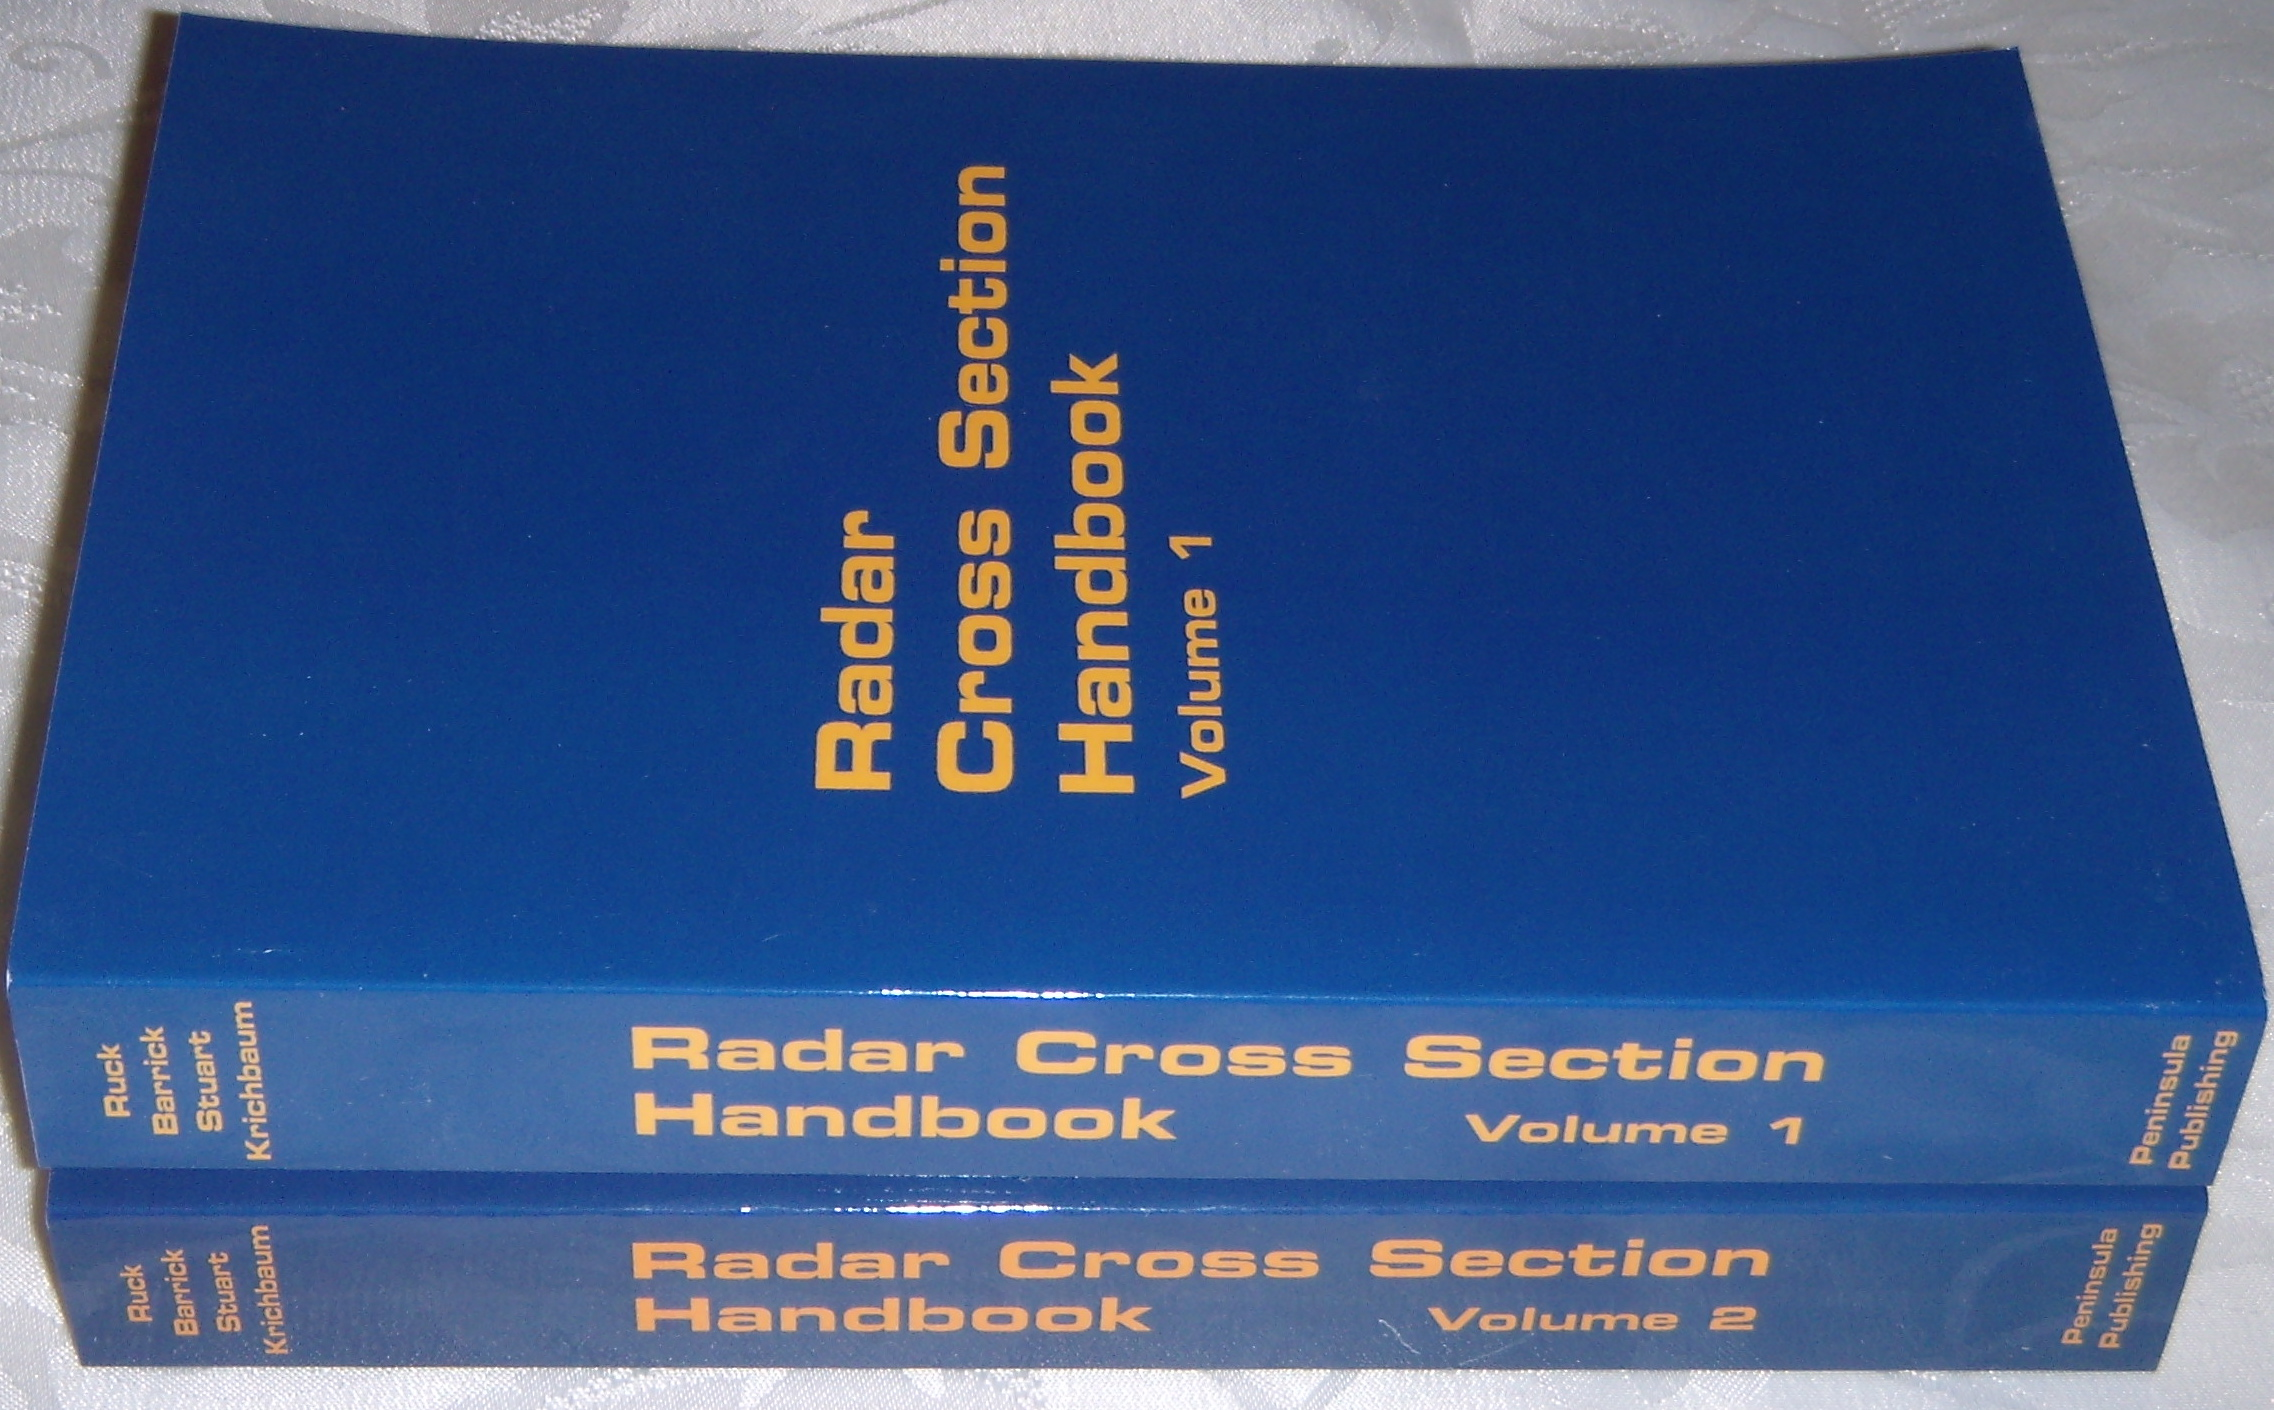 Radar Cross Section Handbook - Volumes 1 & 2